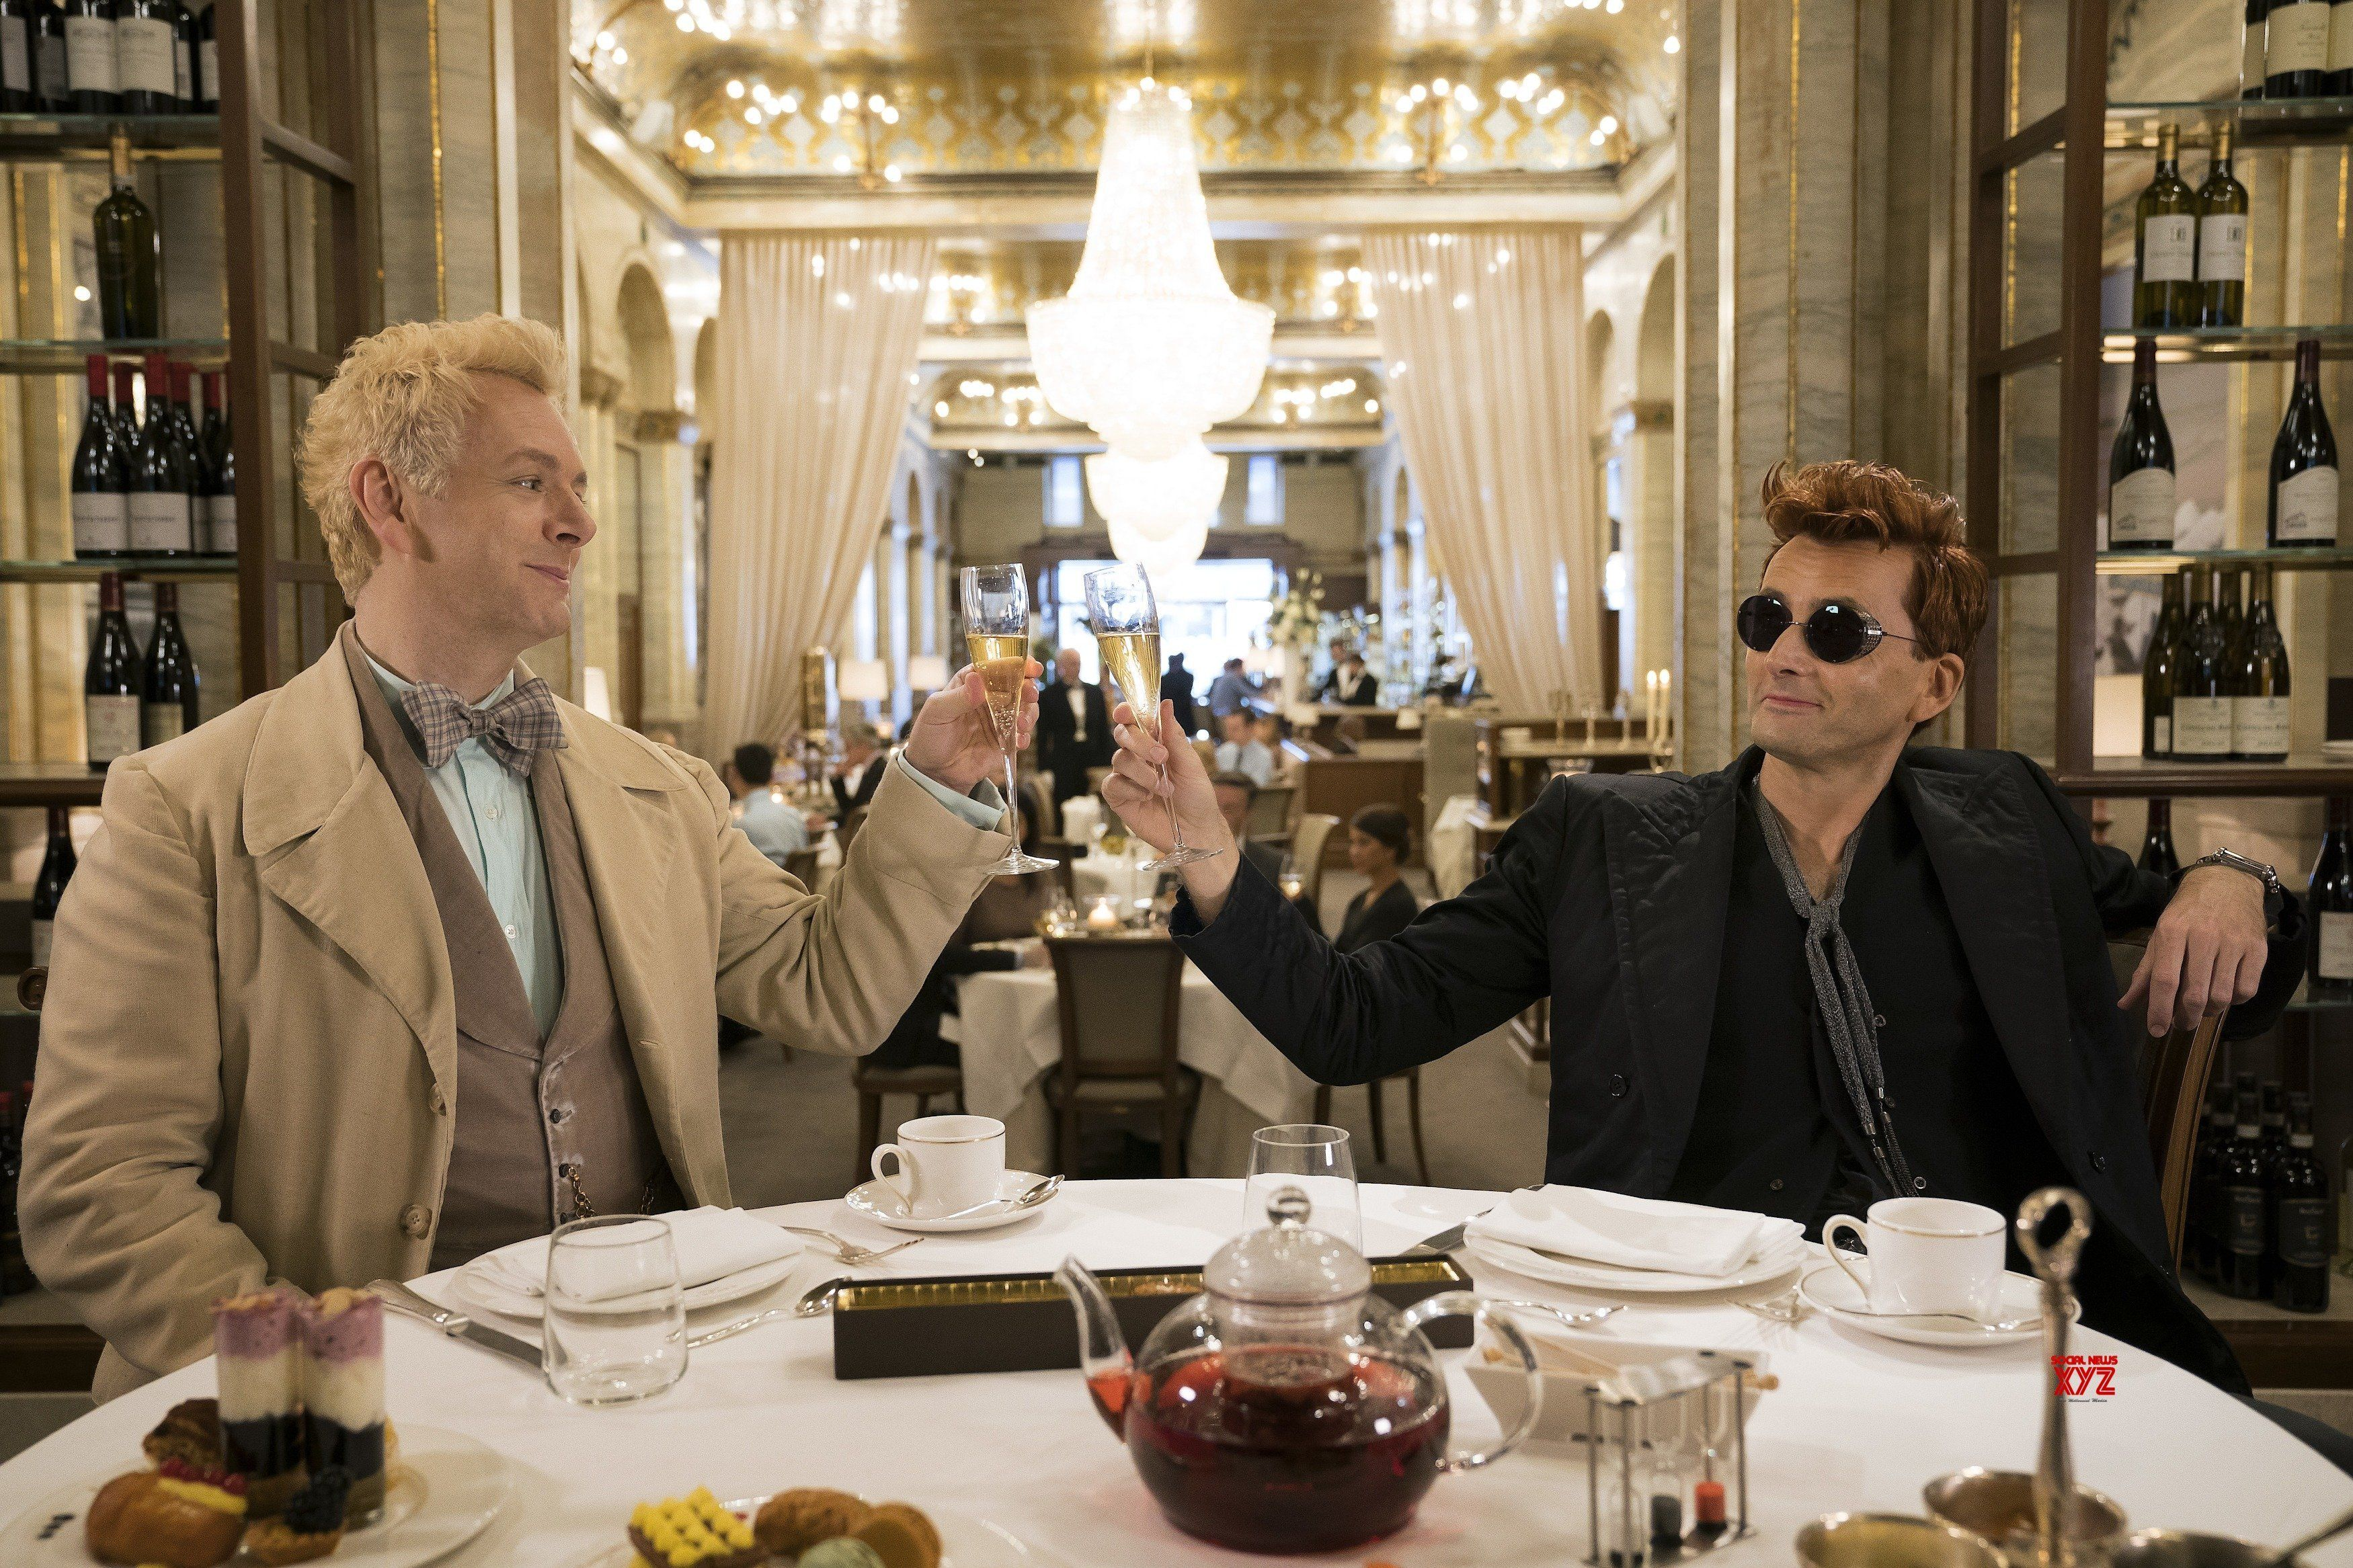 Good Omens Series Stills | Michael sheen, Amazone, Film serie